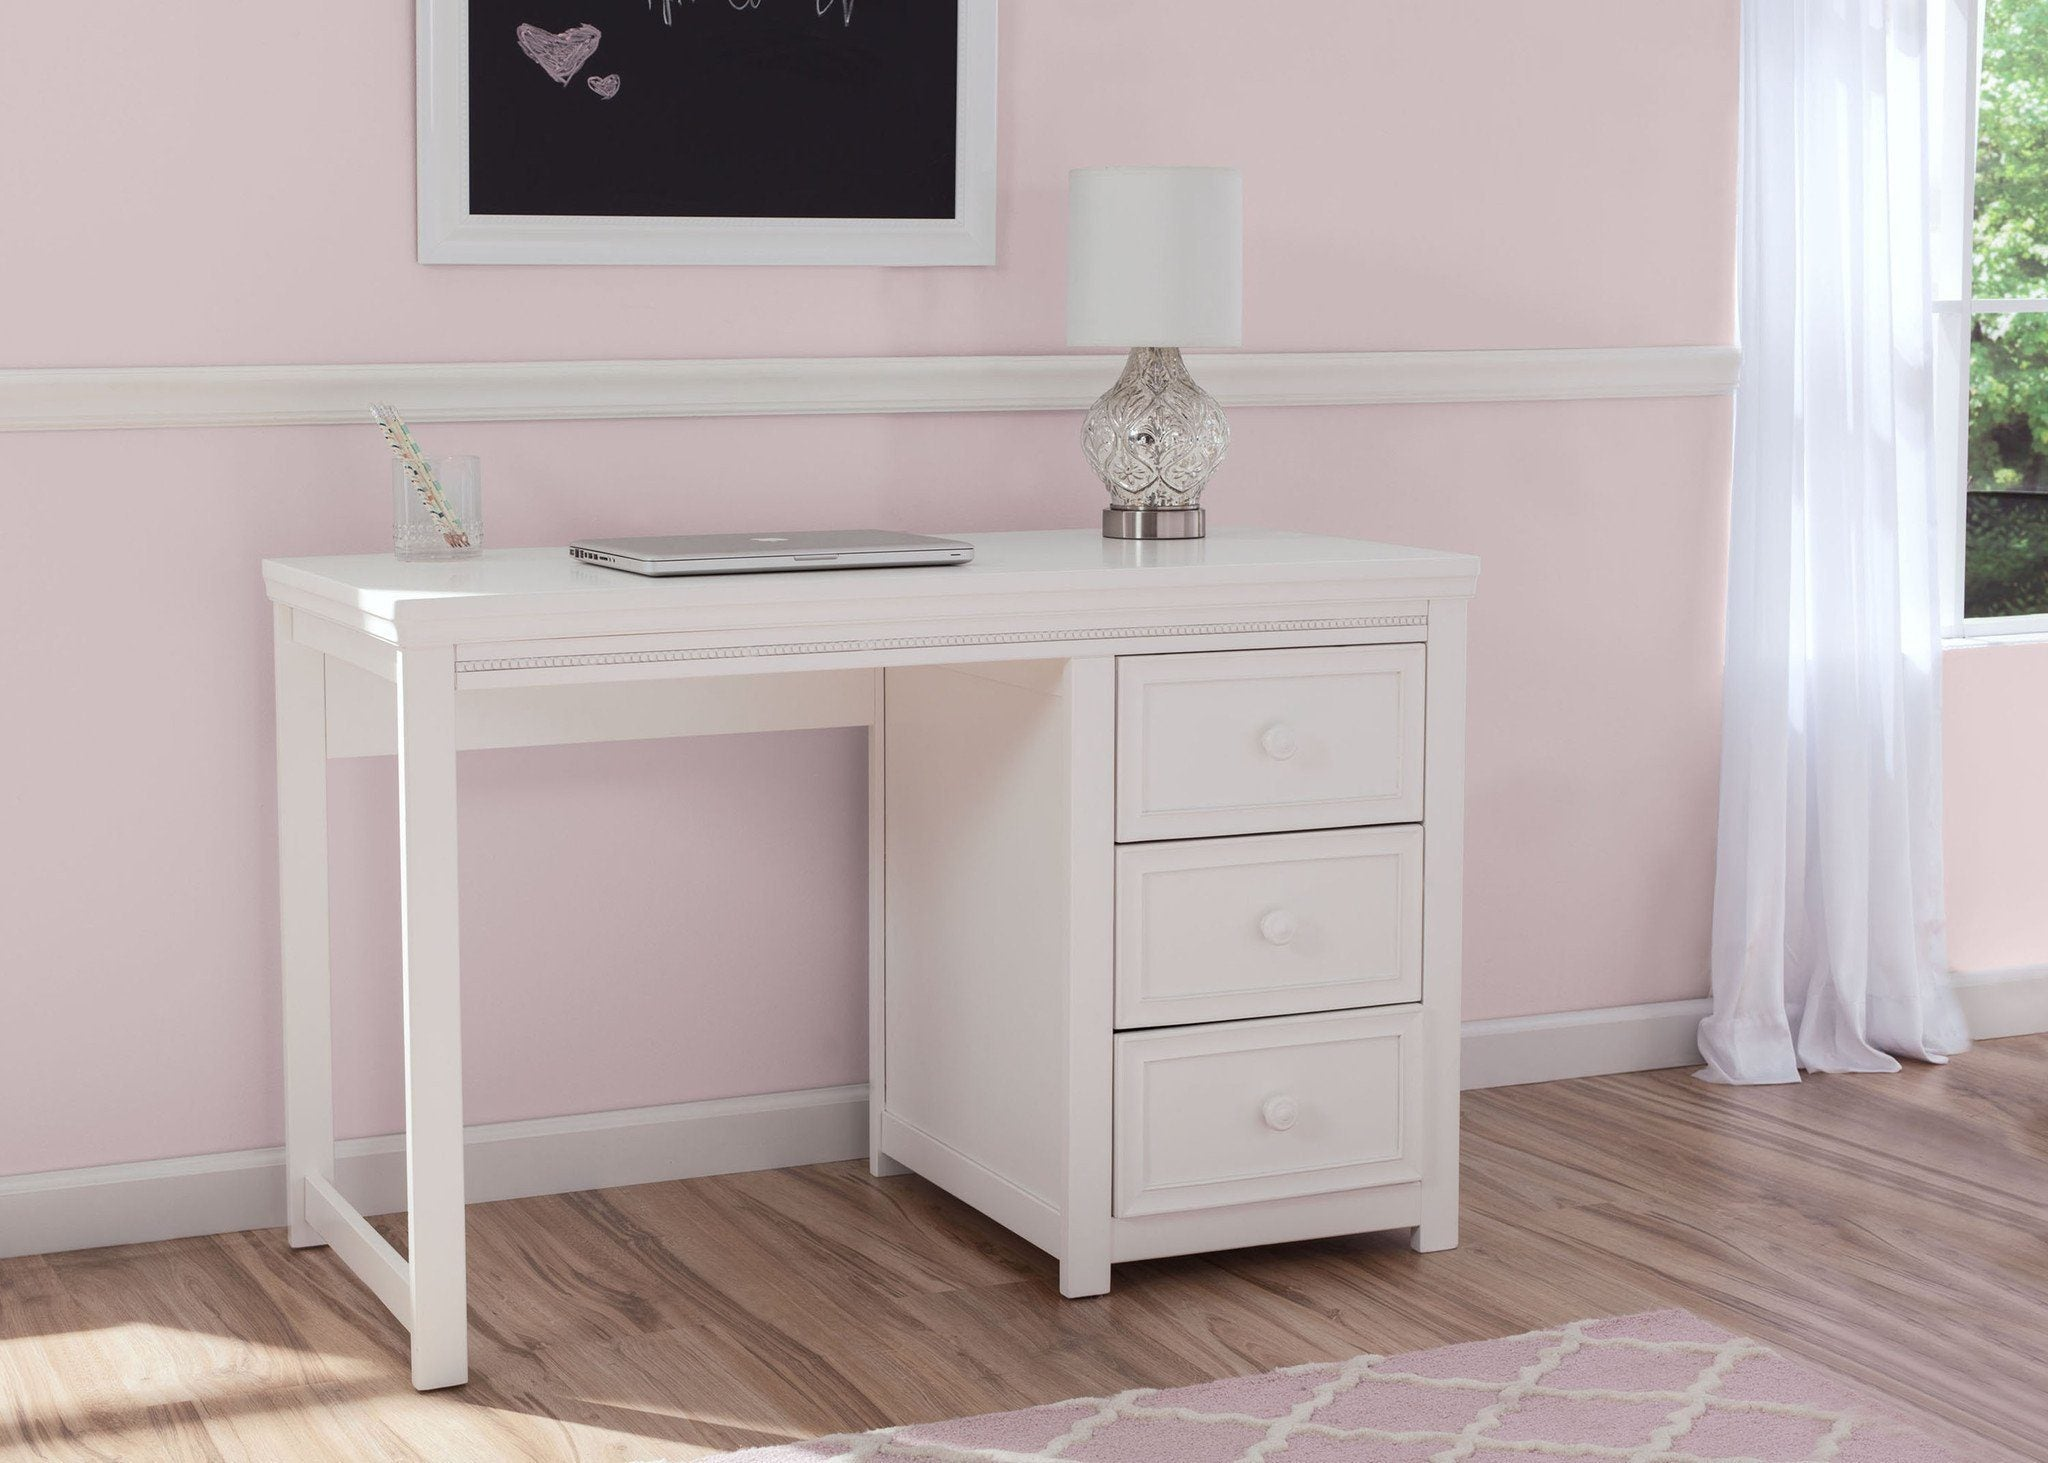 Delta Children White Ambiance (108) Lindsey Desk, Room View, a1a